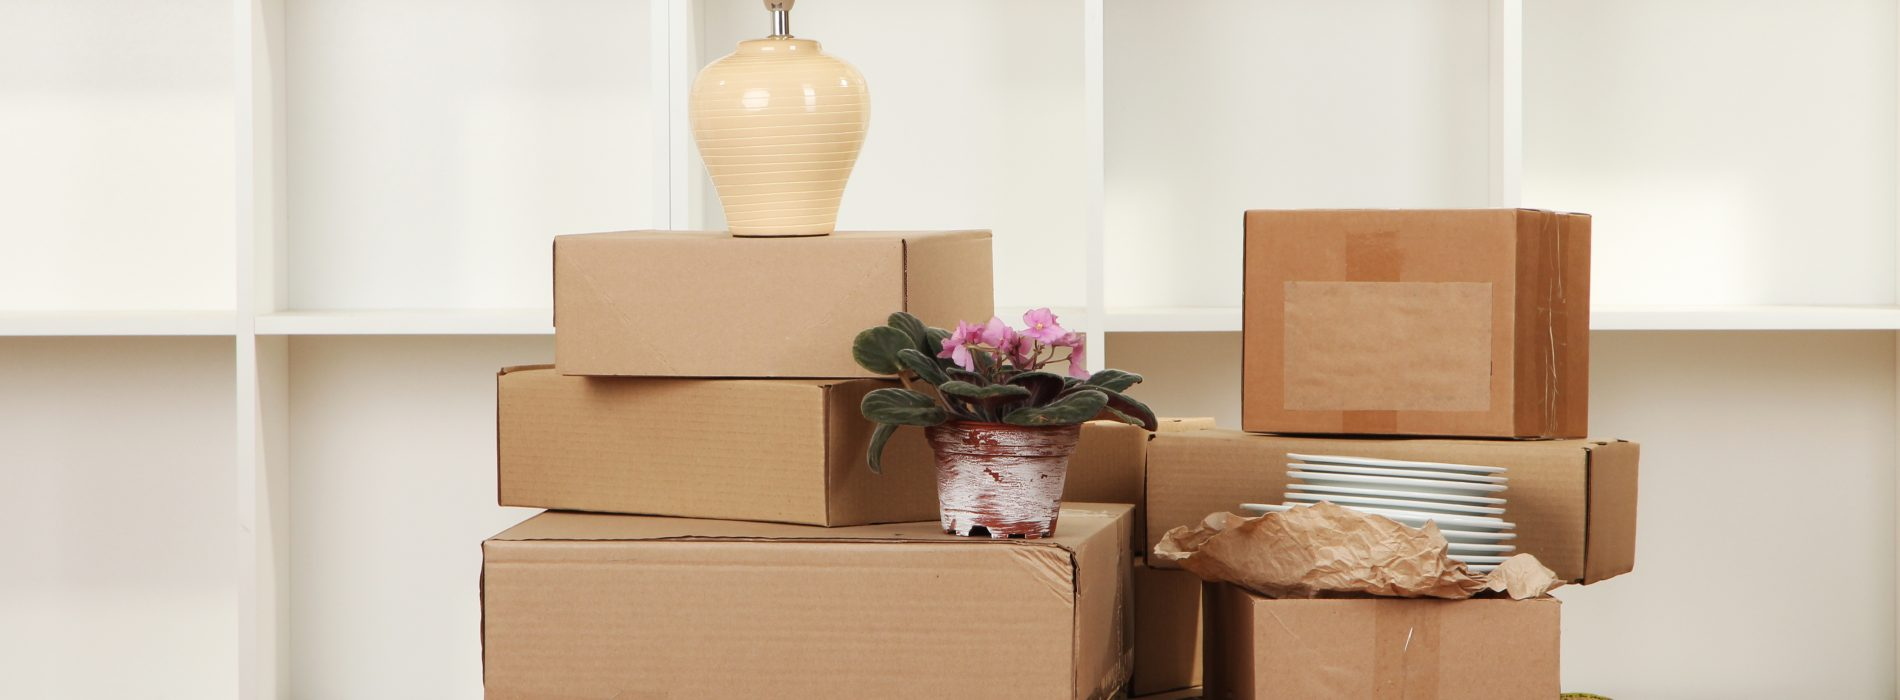 What Are the Rules for Moving Back Home After a Divorce with Children?